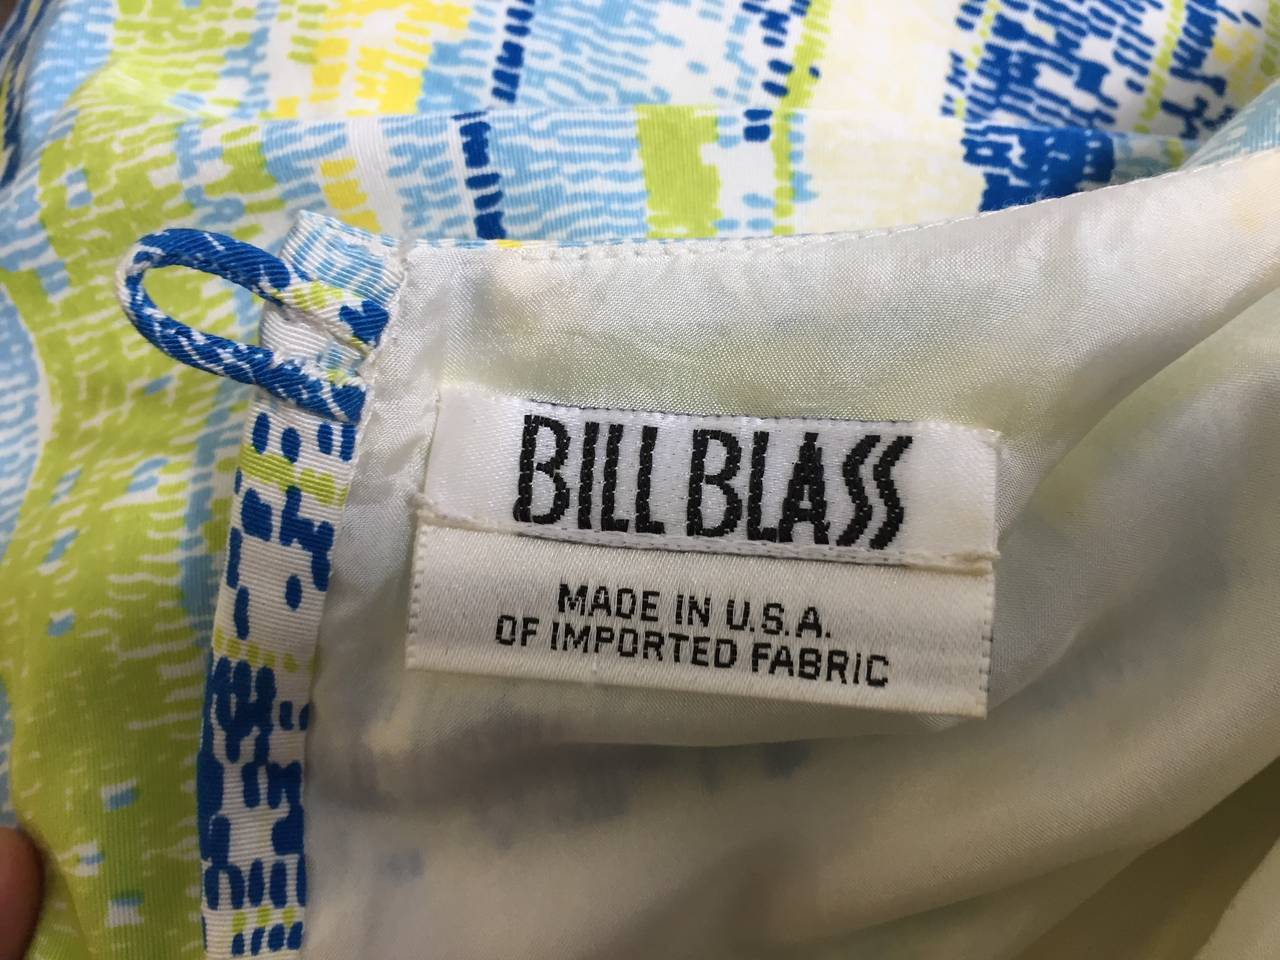 Bill Blass by Peter Som 2009 Cotton Dress With Pockets Size 4. 9